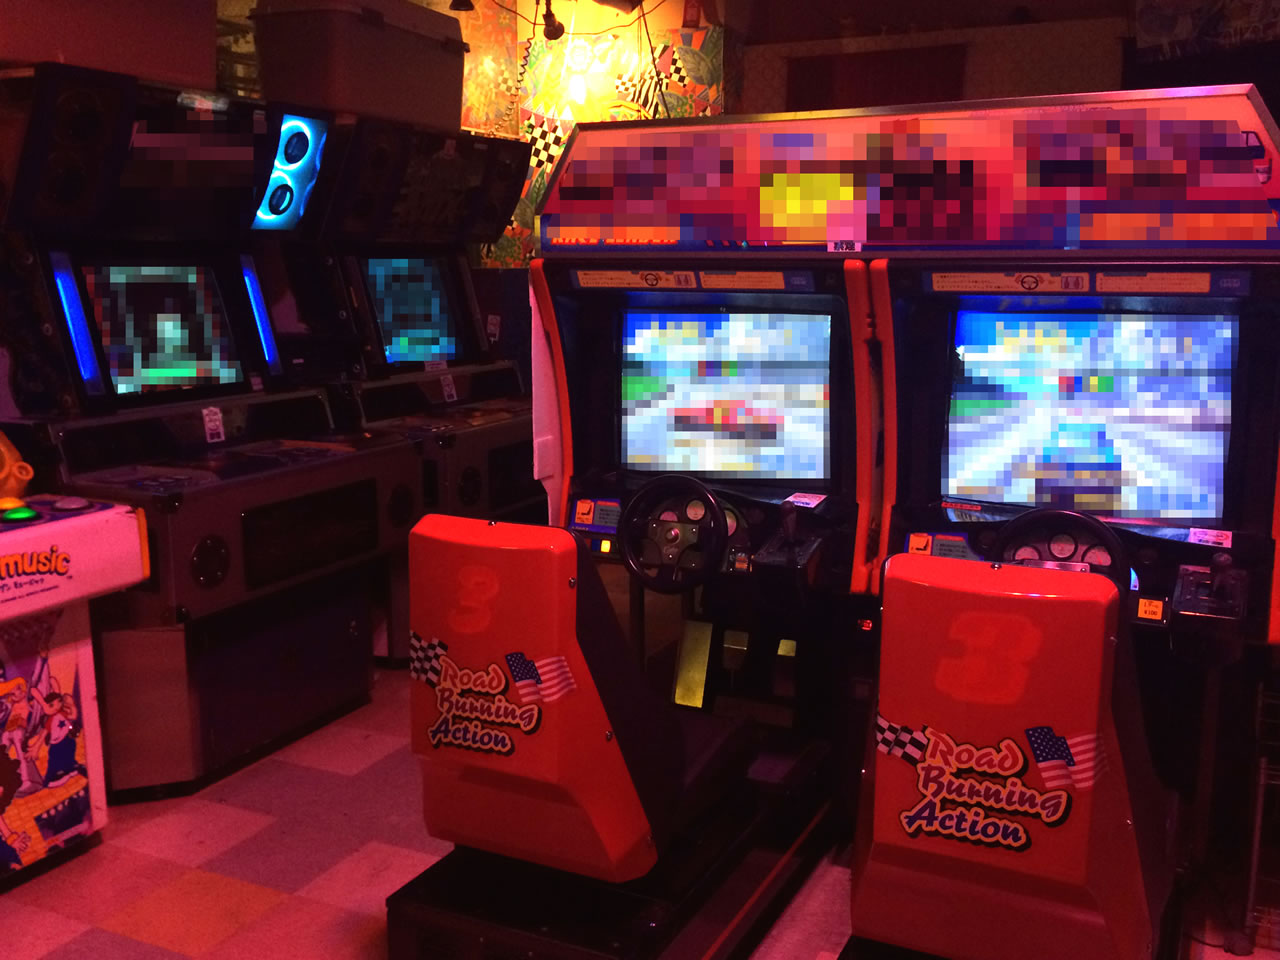 arcade-game-centers-are-becoming-museum-sp-001-003